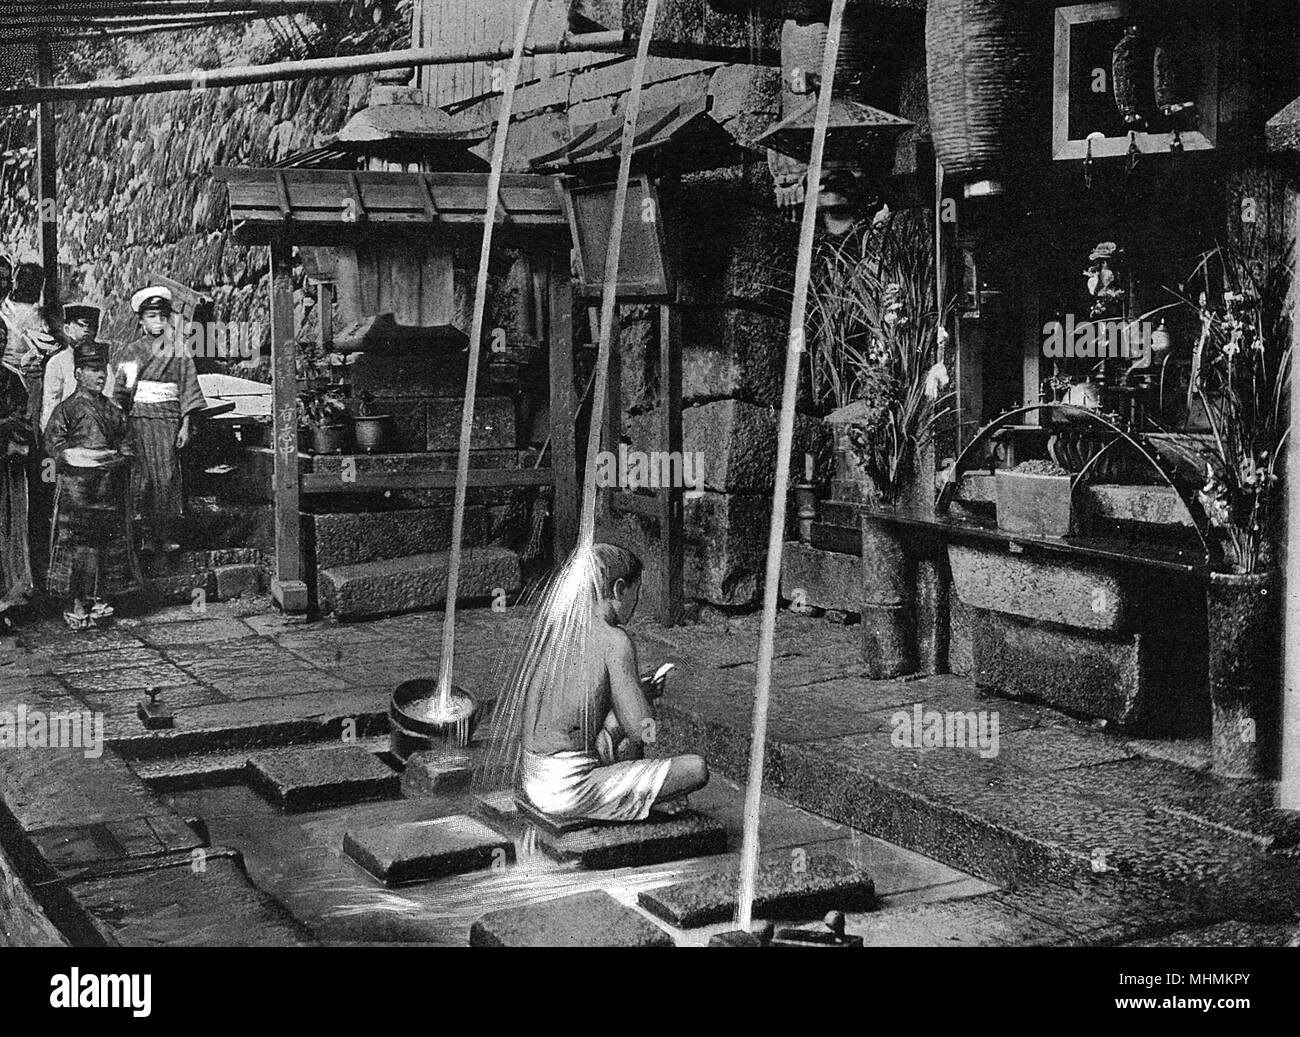 A Japanese liar is purified; he sits underneath a stream of cold water which beats down onto his back.       Date: 1904 - Stock Image